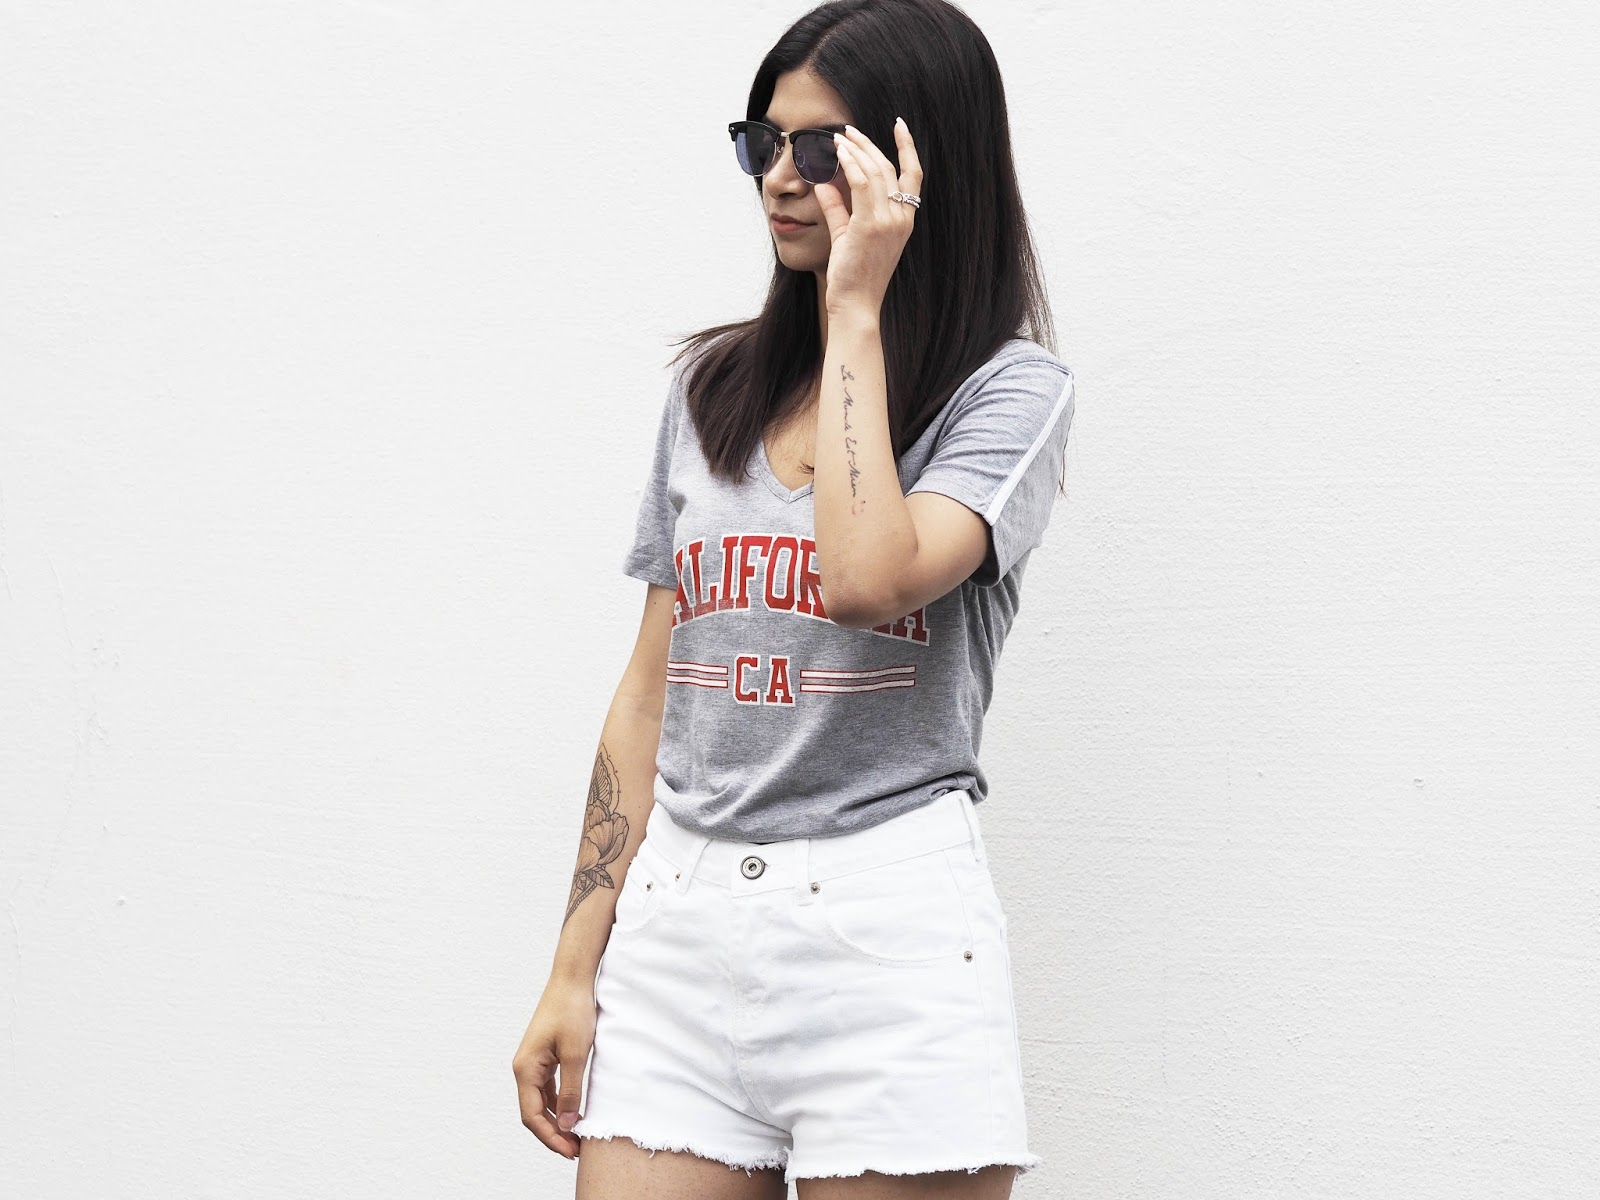 c36c2d0086a3 I am obsessed with denim shorts. I need to find a blue pair and a black  pair too as recentlyI lost weight and I ...